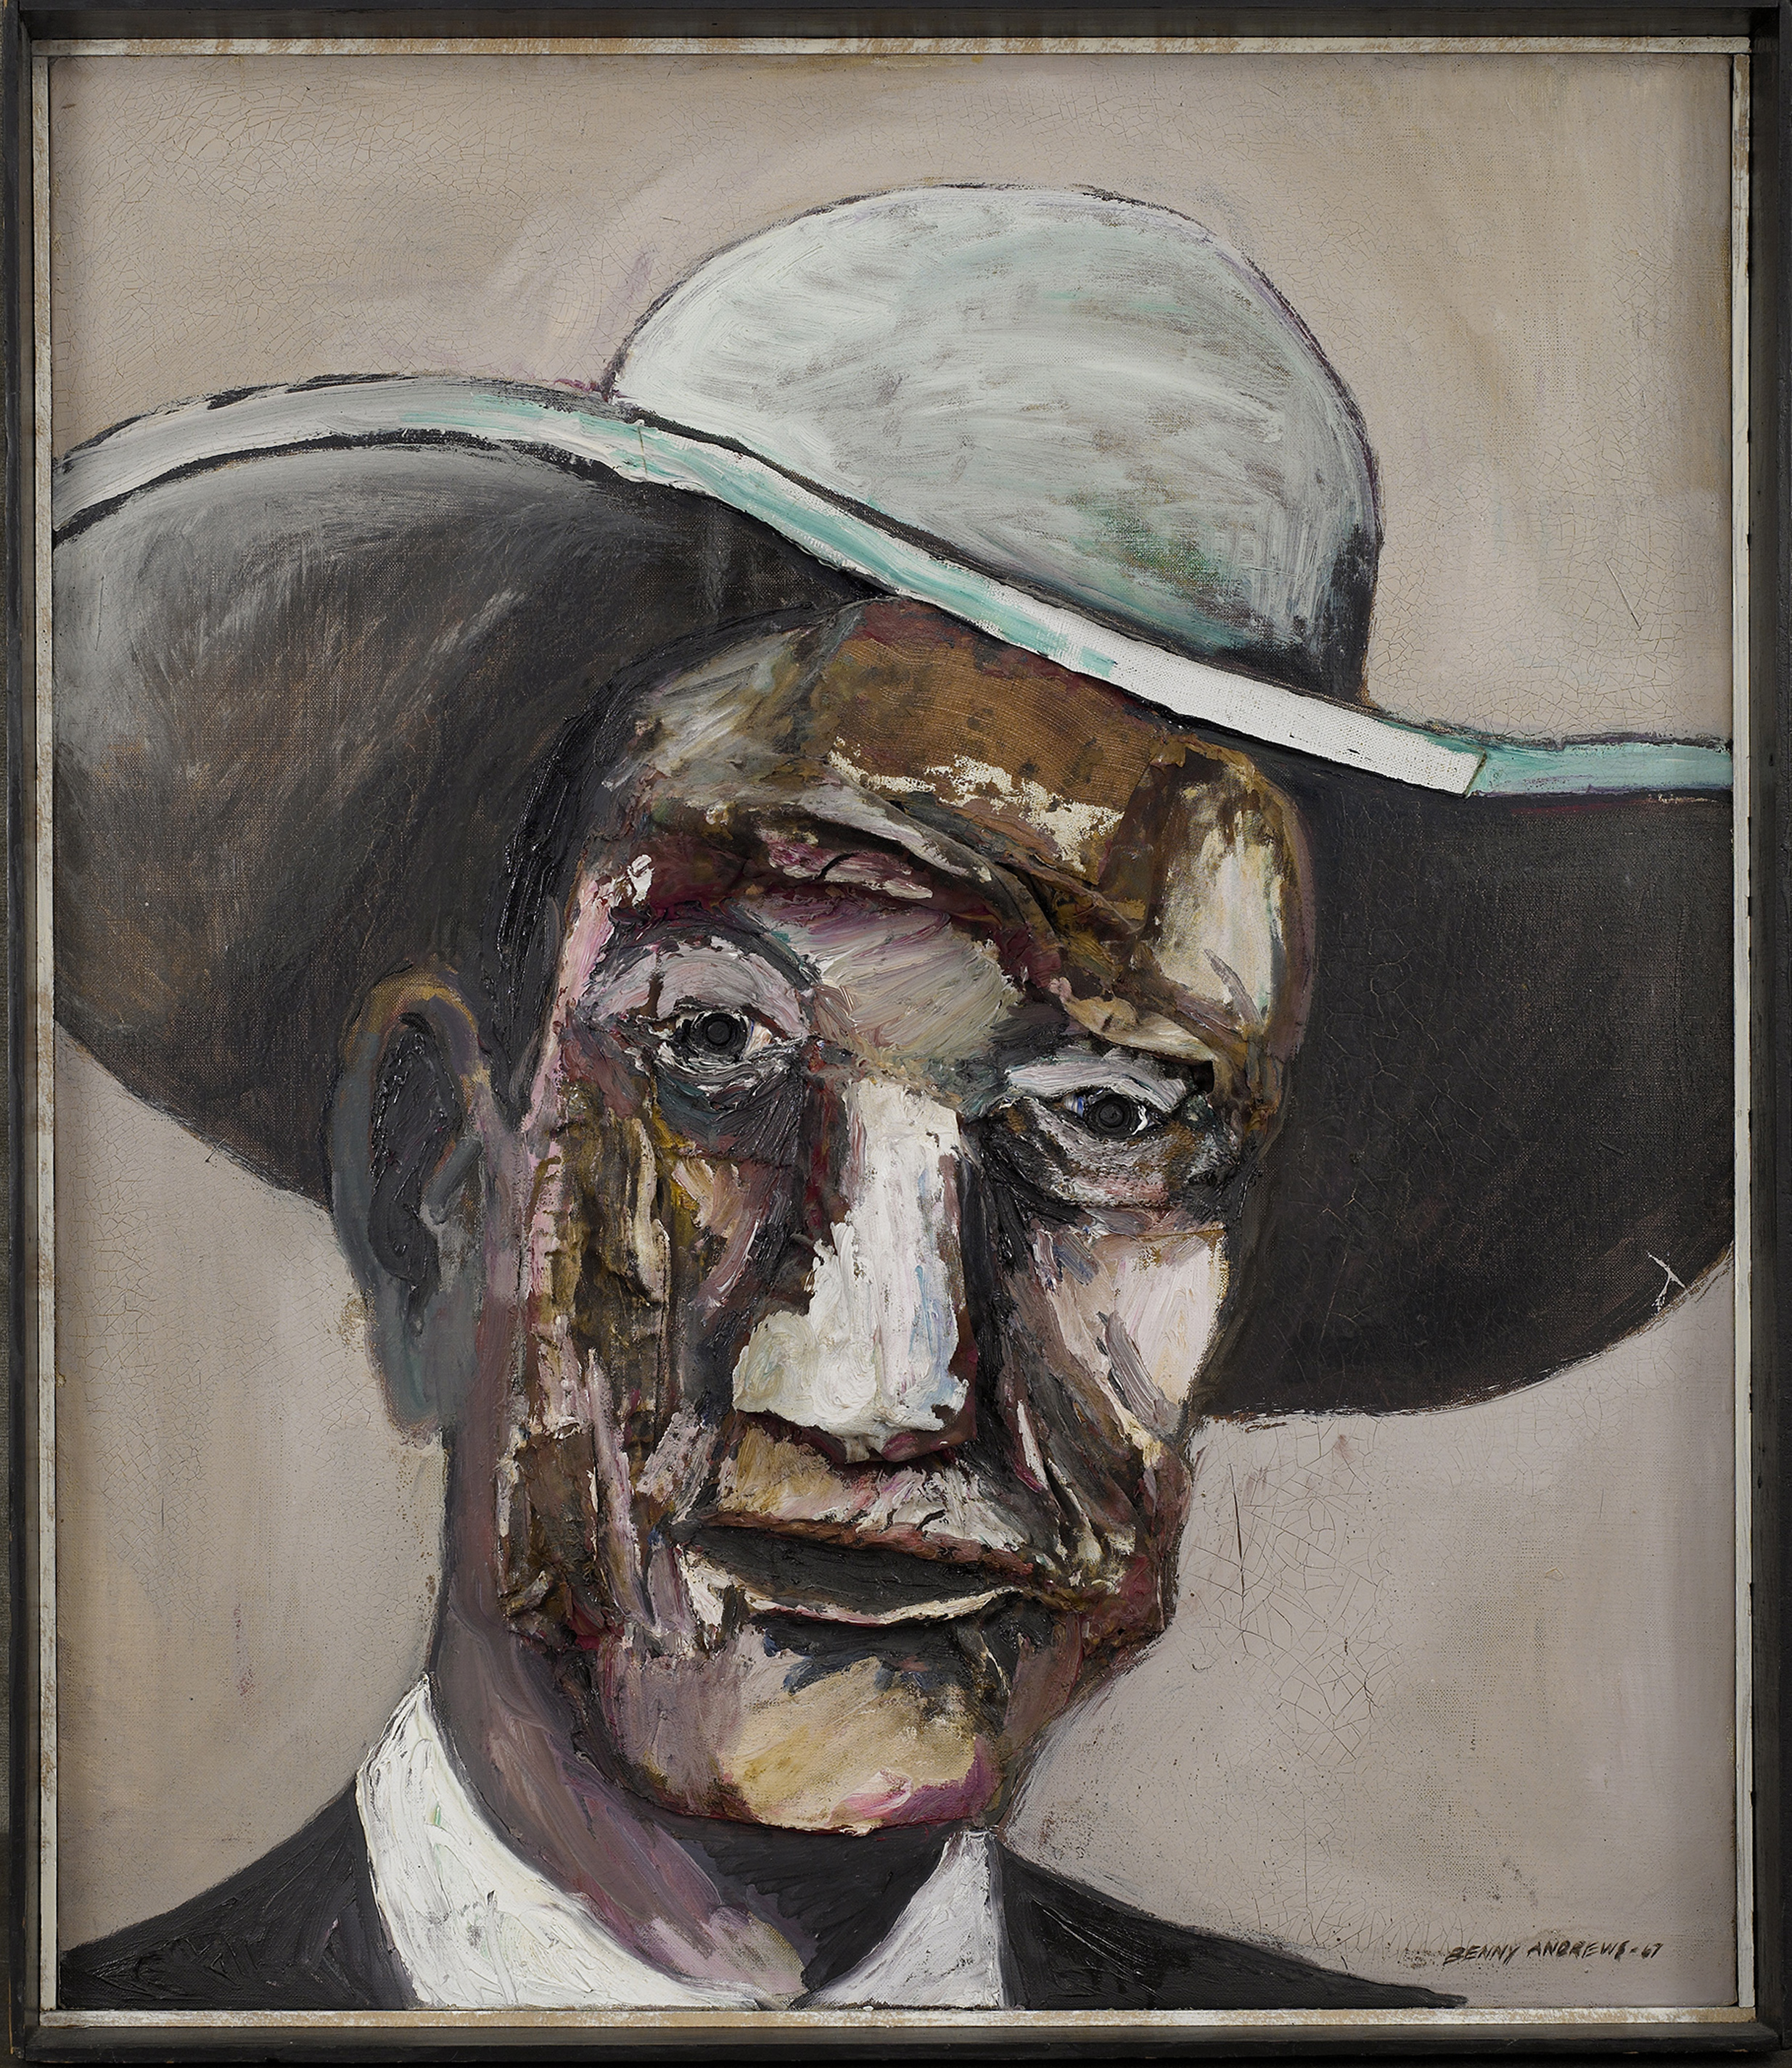 SOLD  Mr. America  , 1967, oil on canvas, 28 x 24 inches